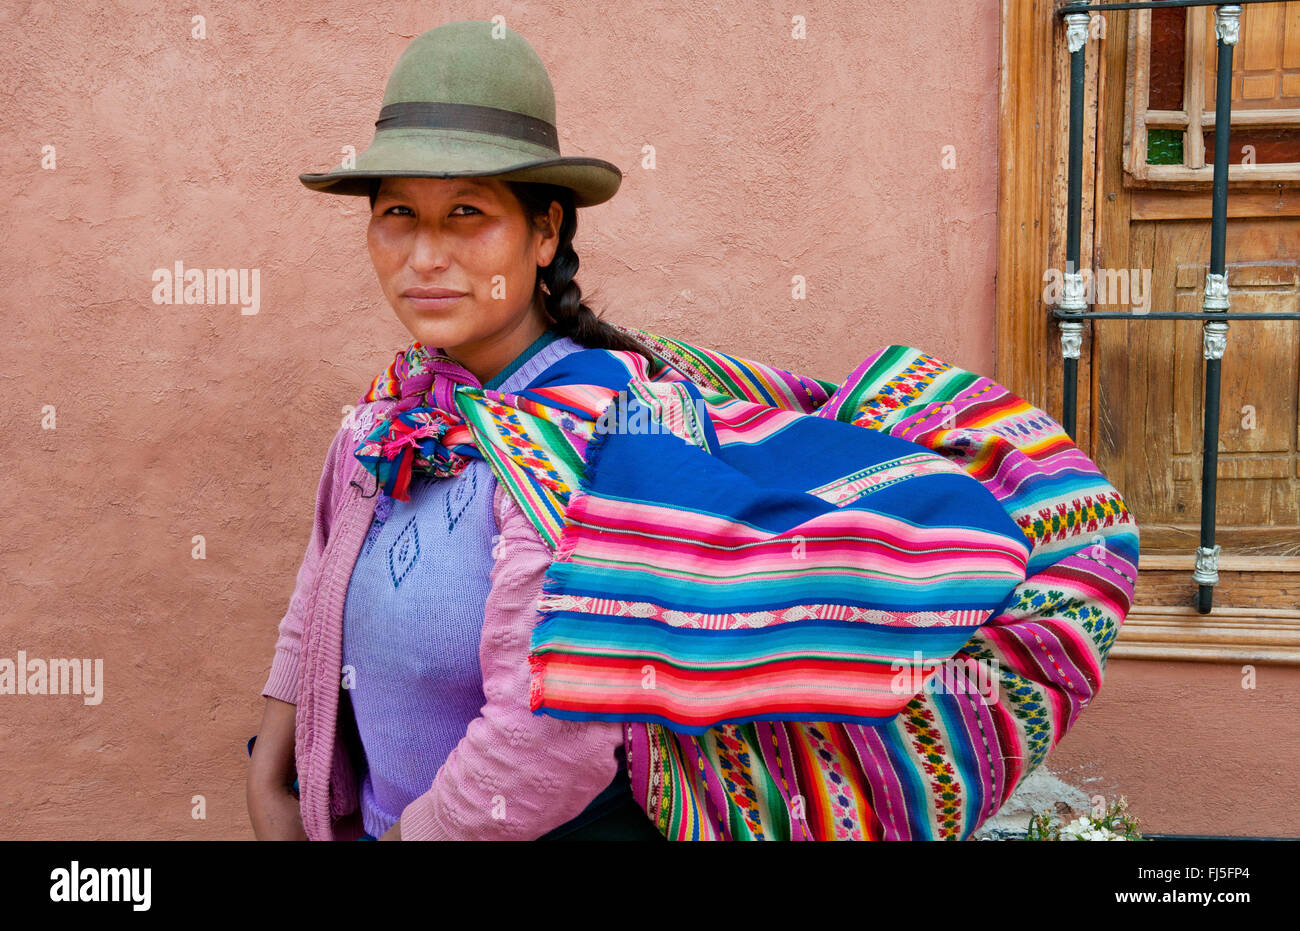 woman in traditional clothing carrying piggyback her baby in a sling, portrait, Peru, Pisaq - Stock Image